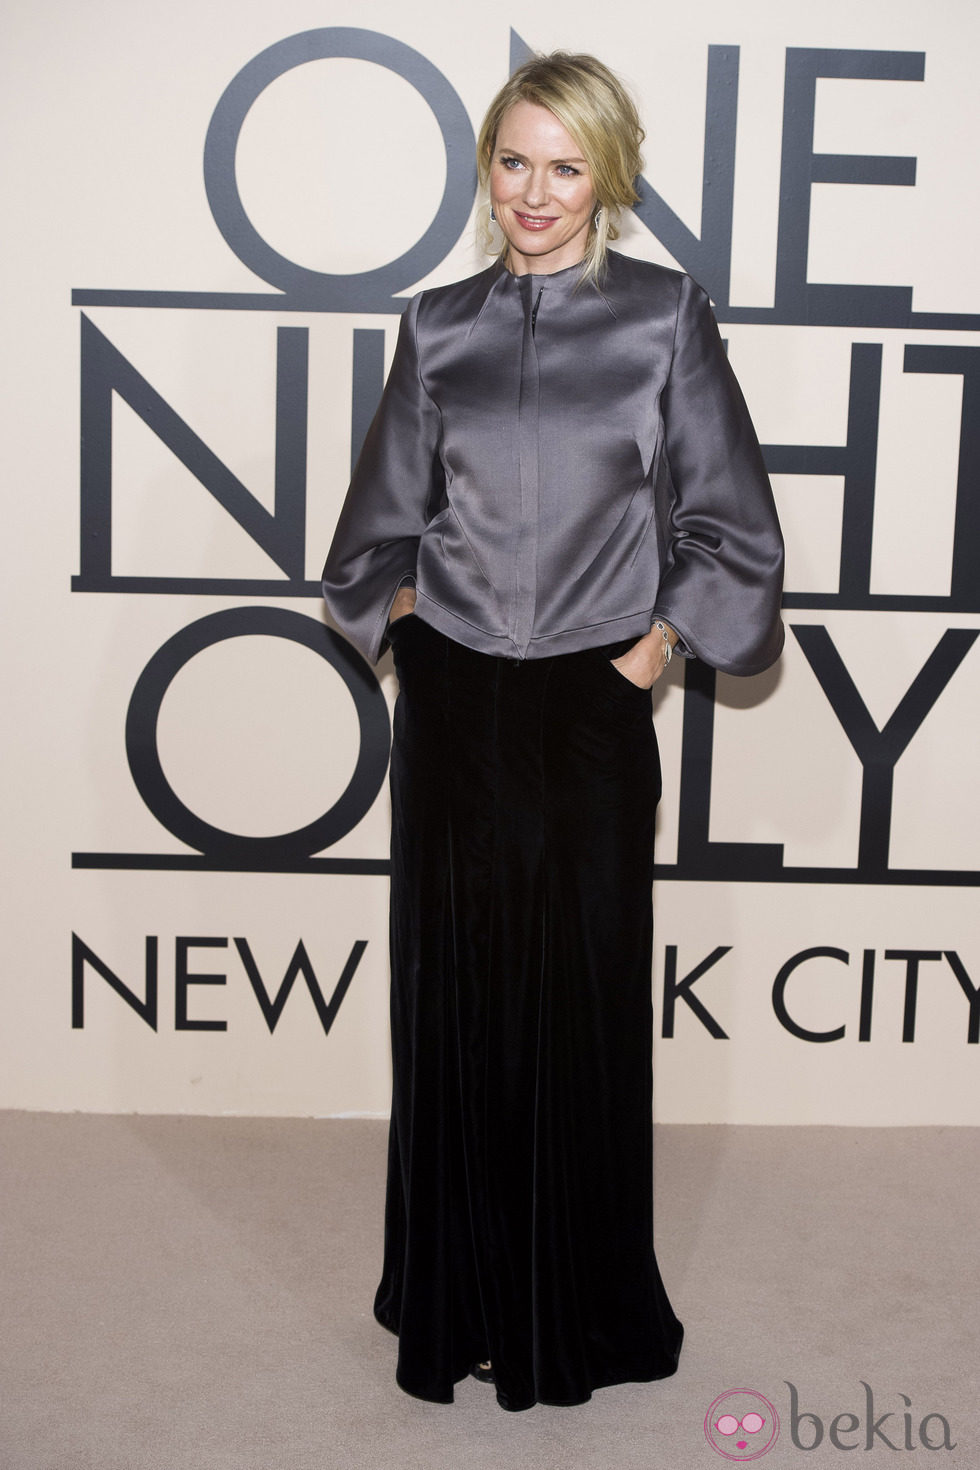 Naomi Watts en la fiesta de Giorgio Armani 'One NIght Only' en Nueva York